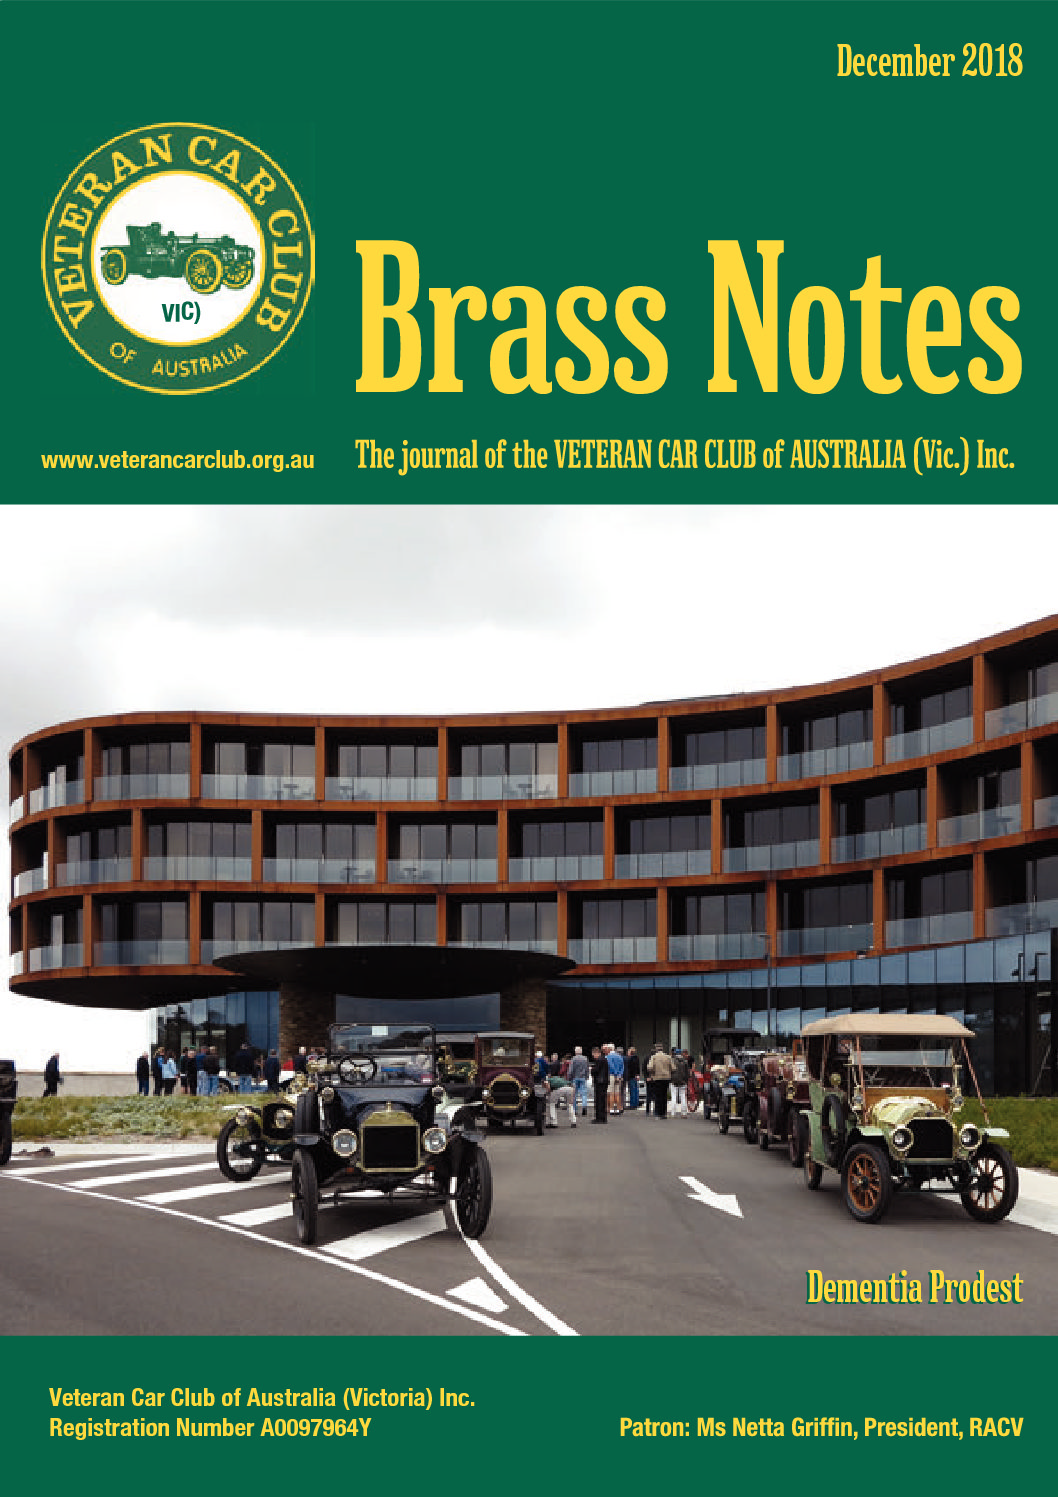 Brass Notes December 2018